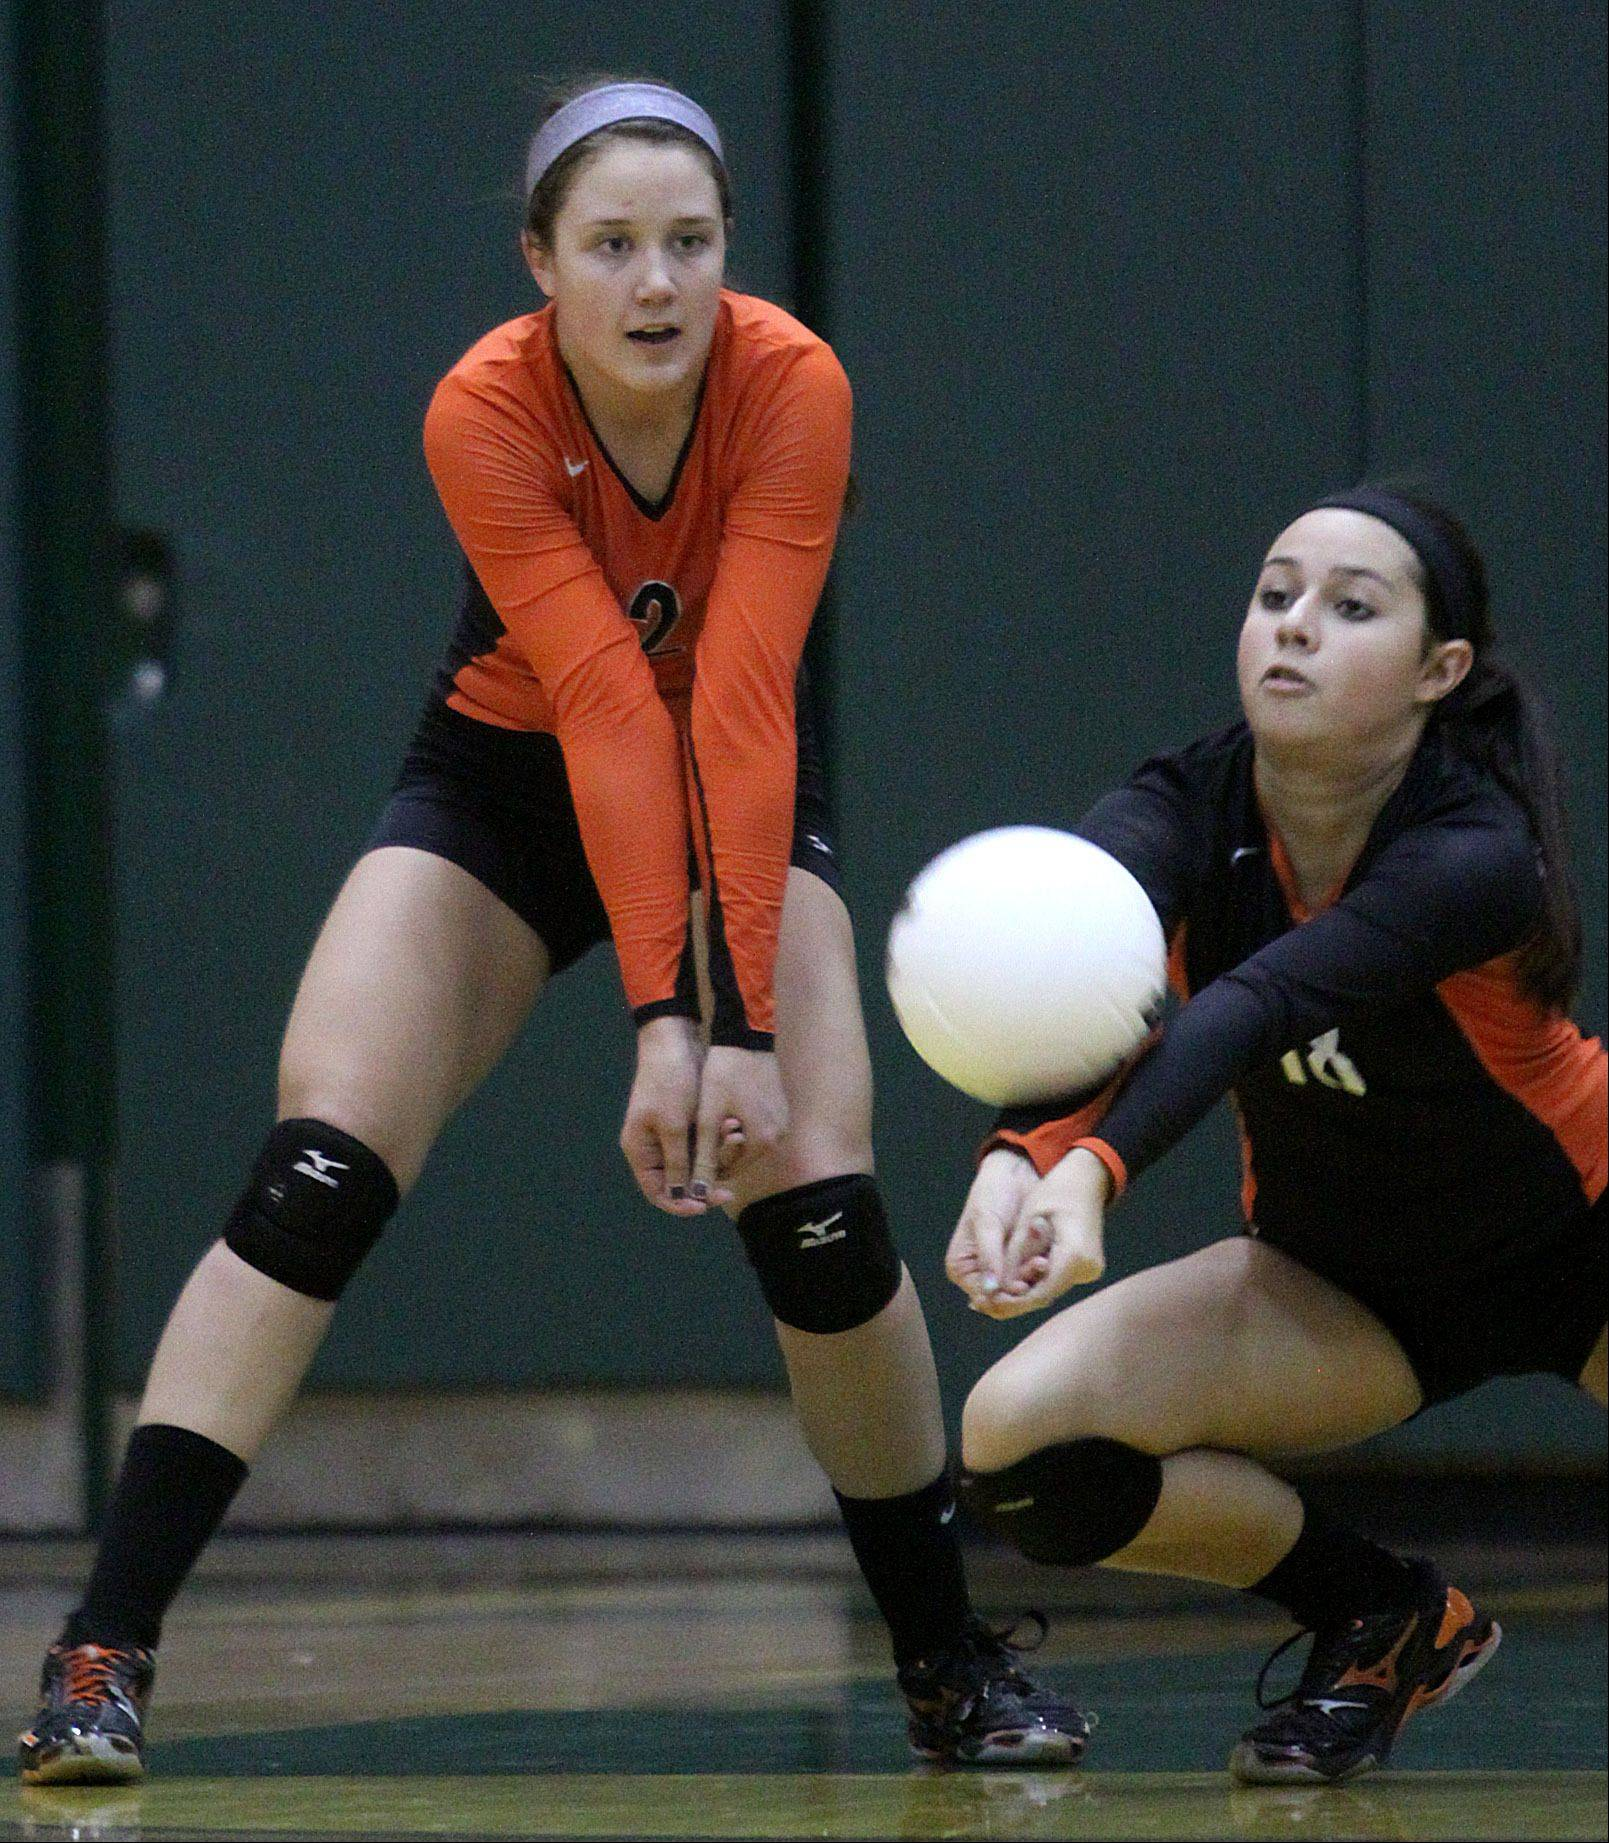 Libertyville's Brooke Donovan, right, lunges for the ball as teammate Kristen Webb, left, keeps an eye on the action during sectional title action against Palatine at Fremd on Thursday night.